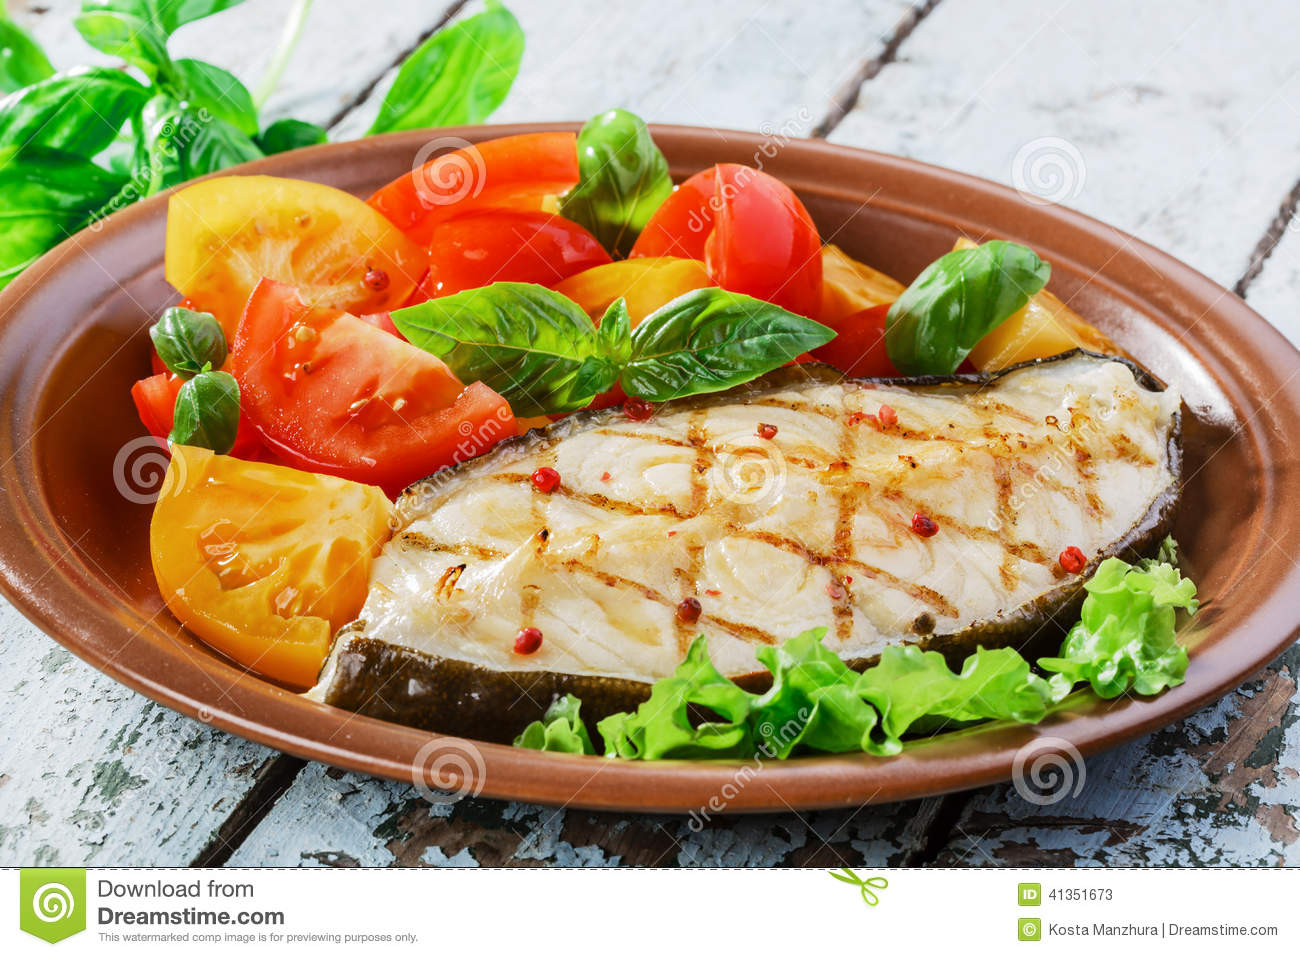 Fish steak grilled vegetables lancet fish.